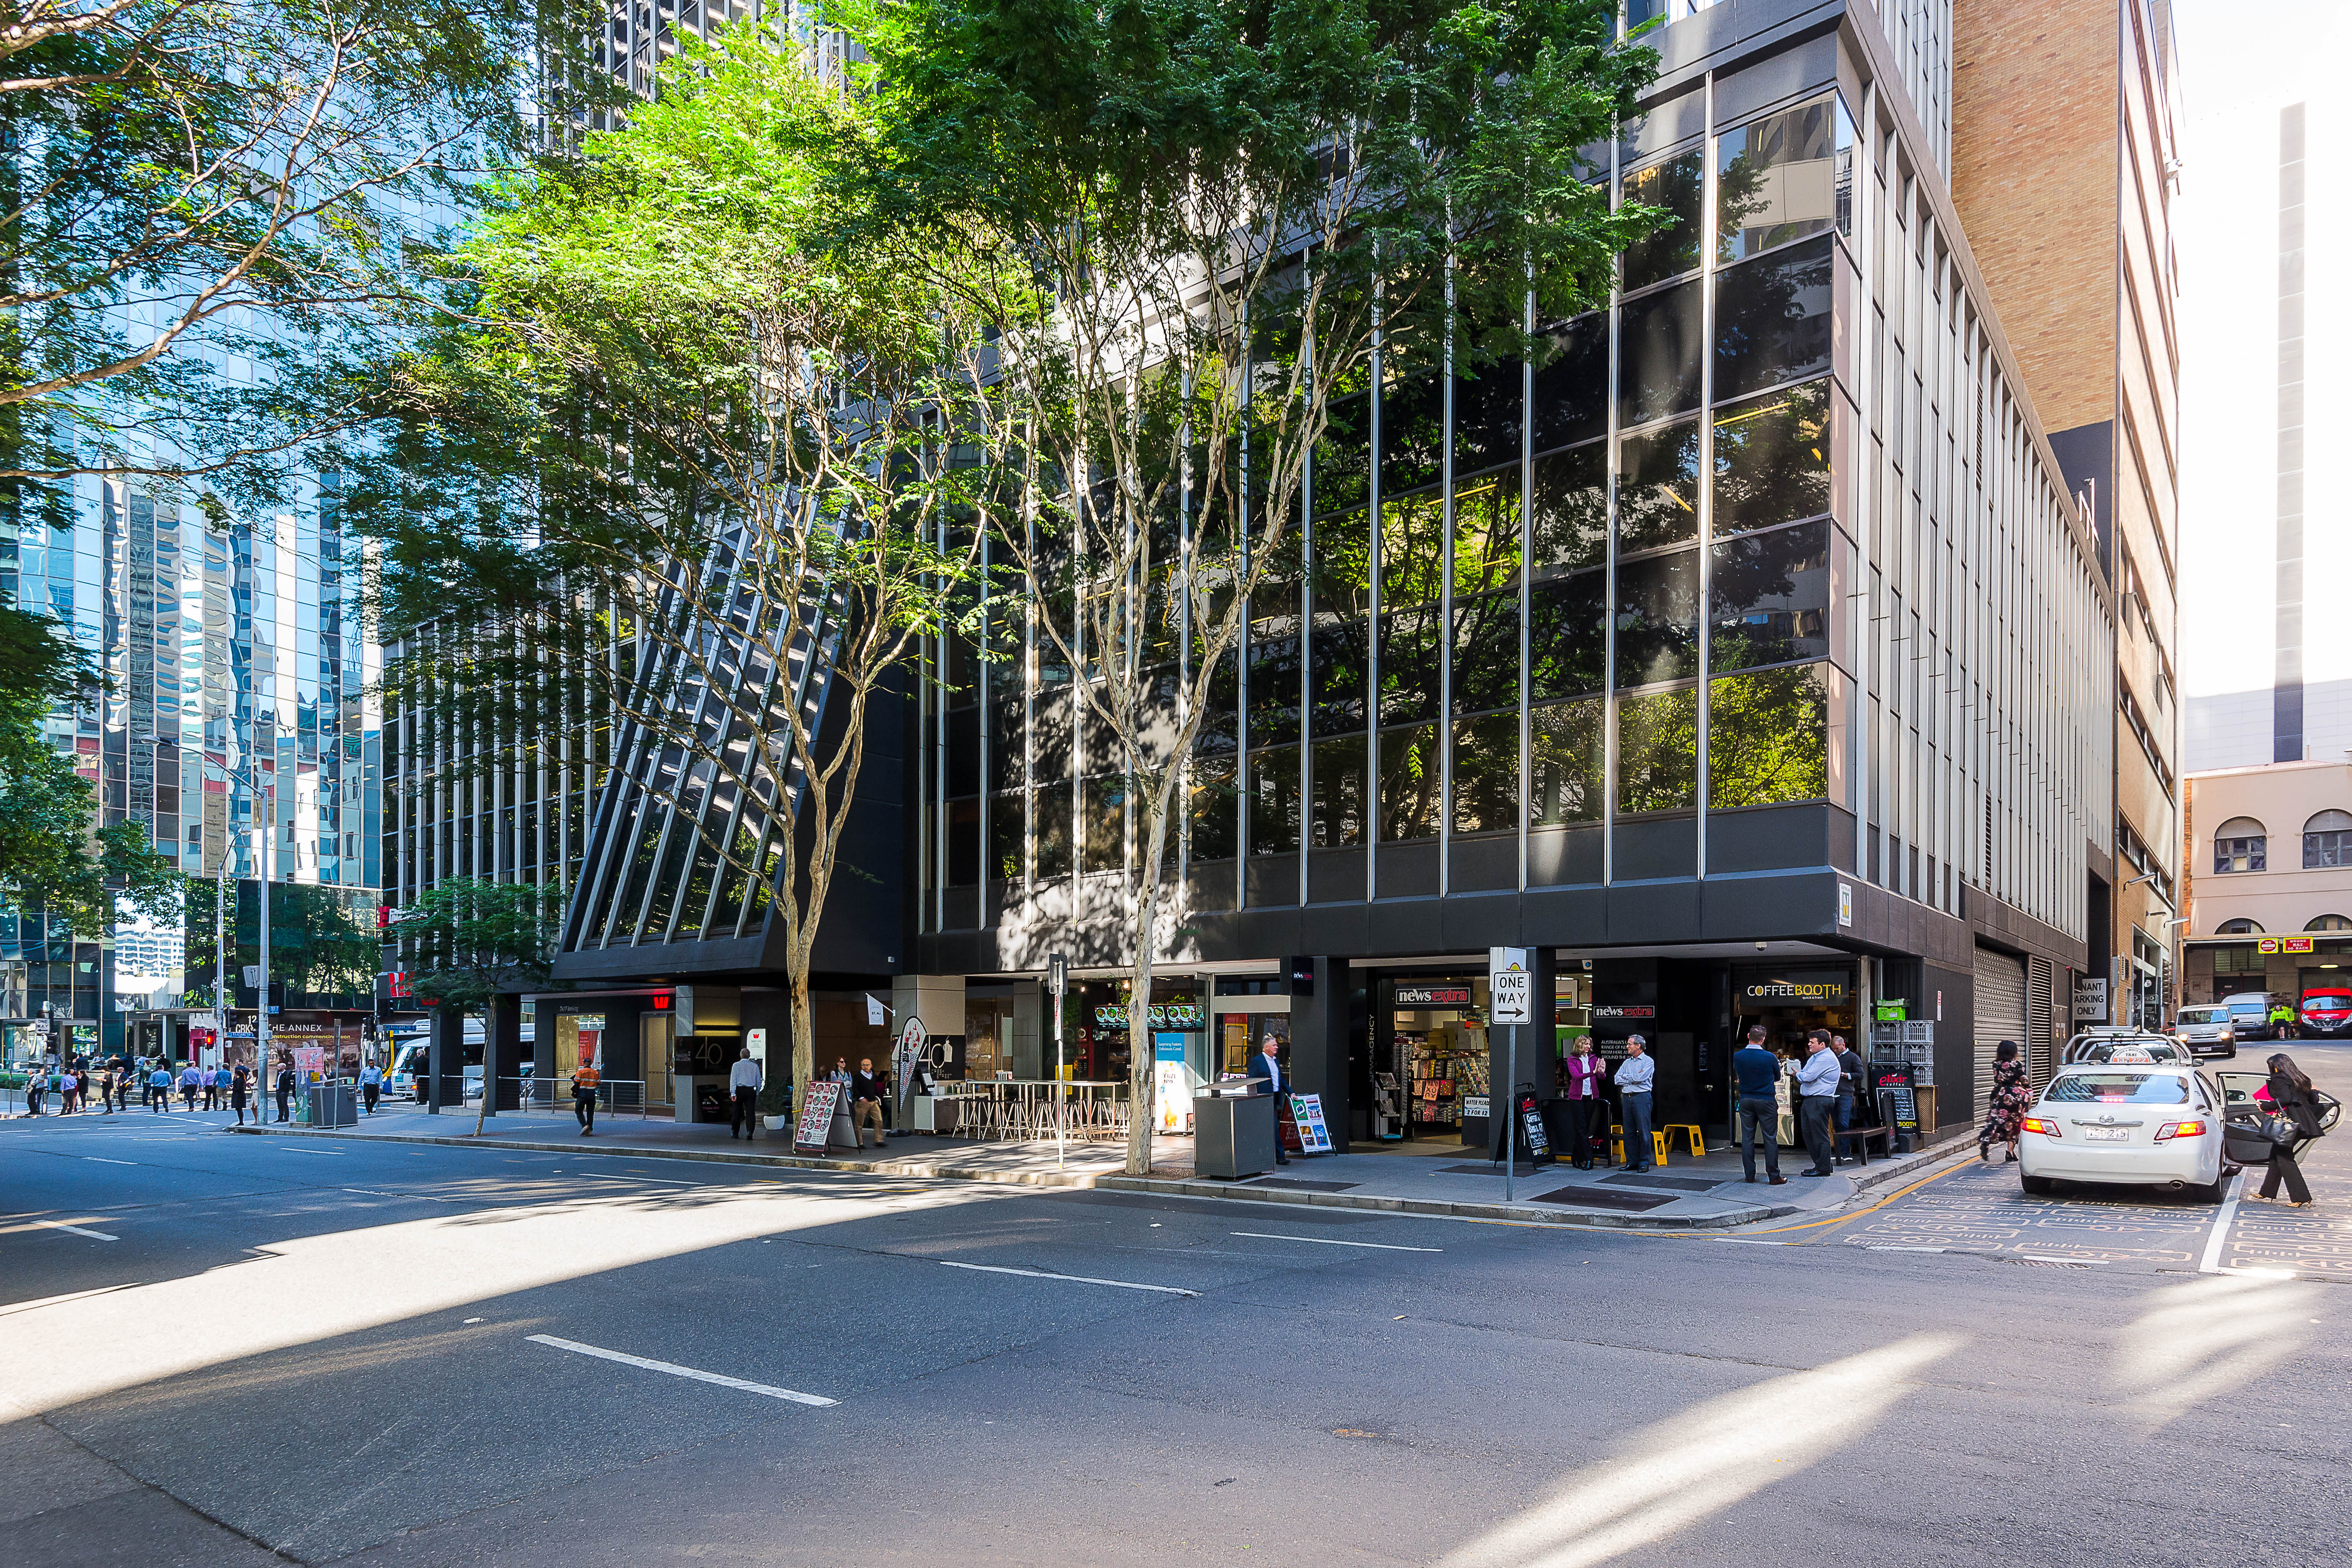 Commercial retail for lease Brisbane City - Brisbane property real estate agency